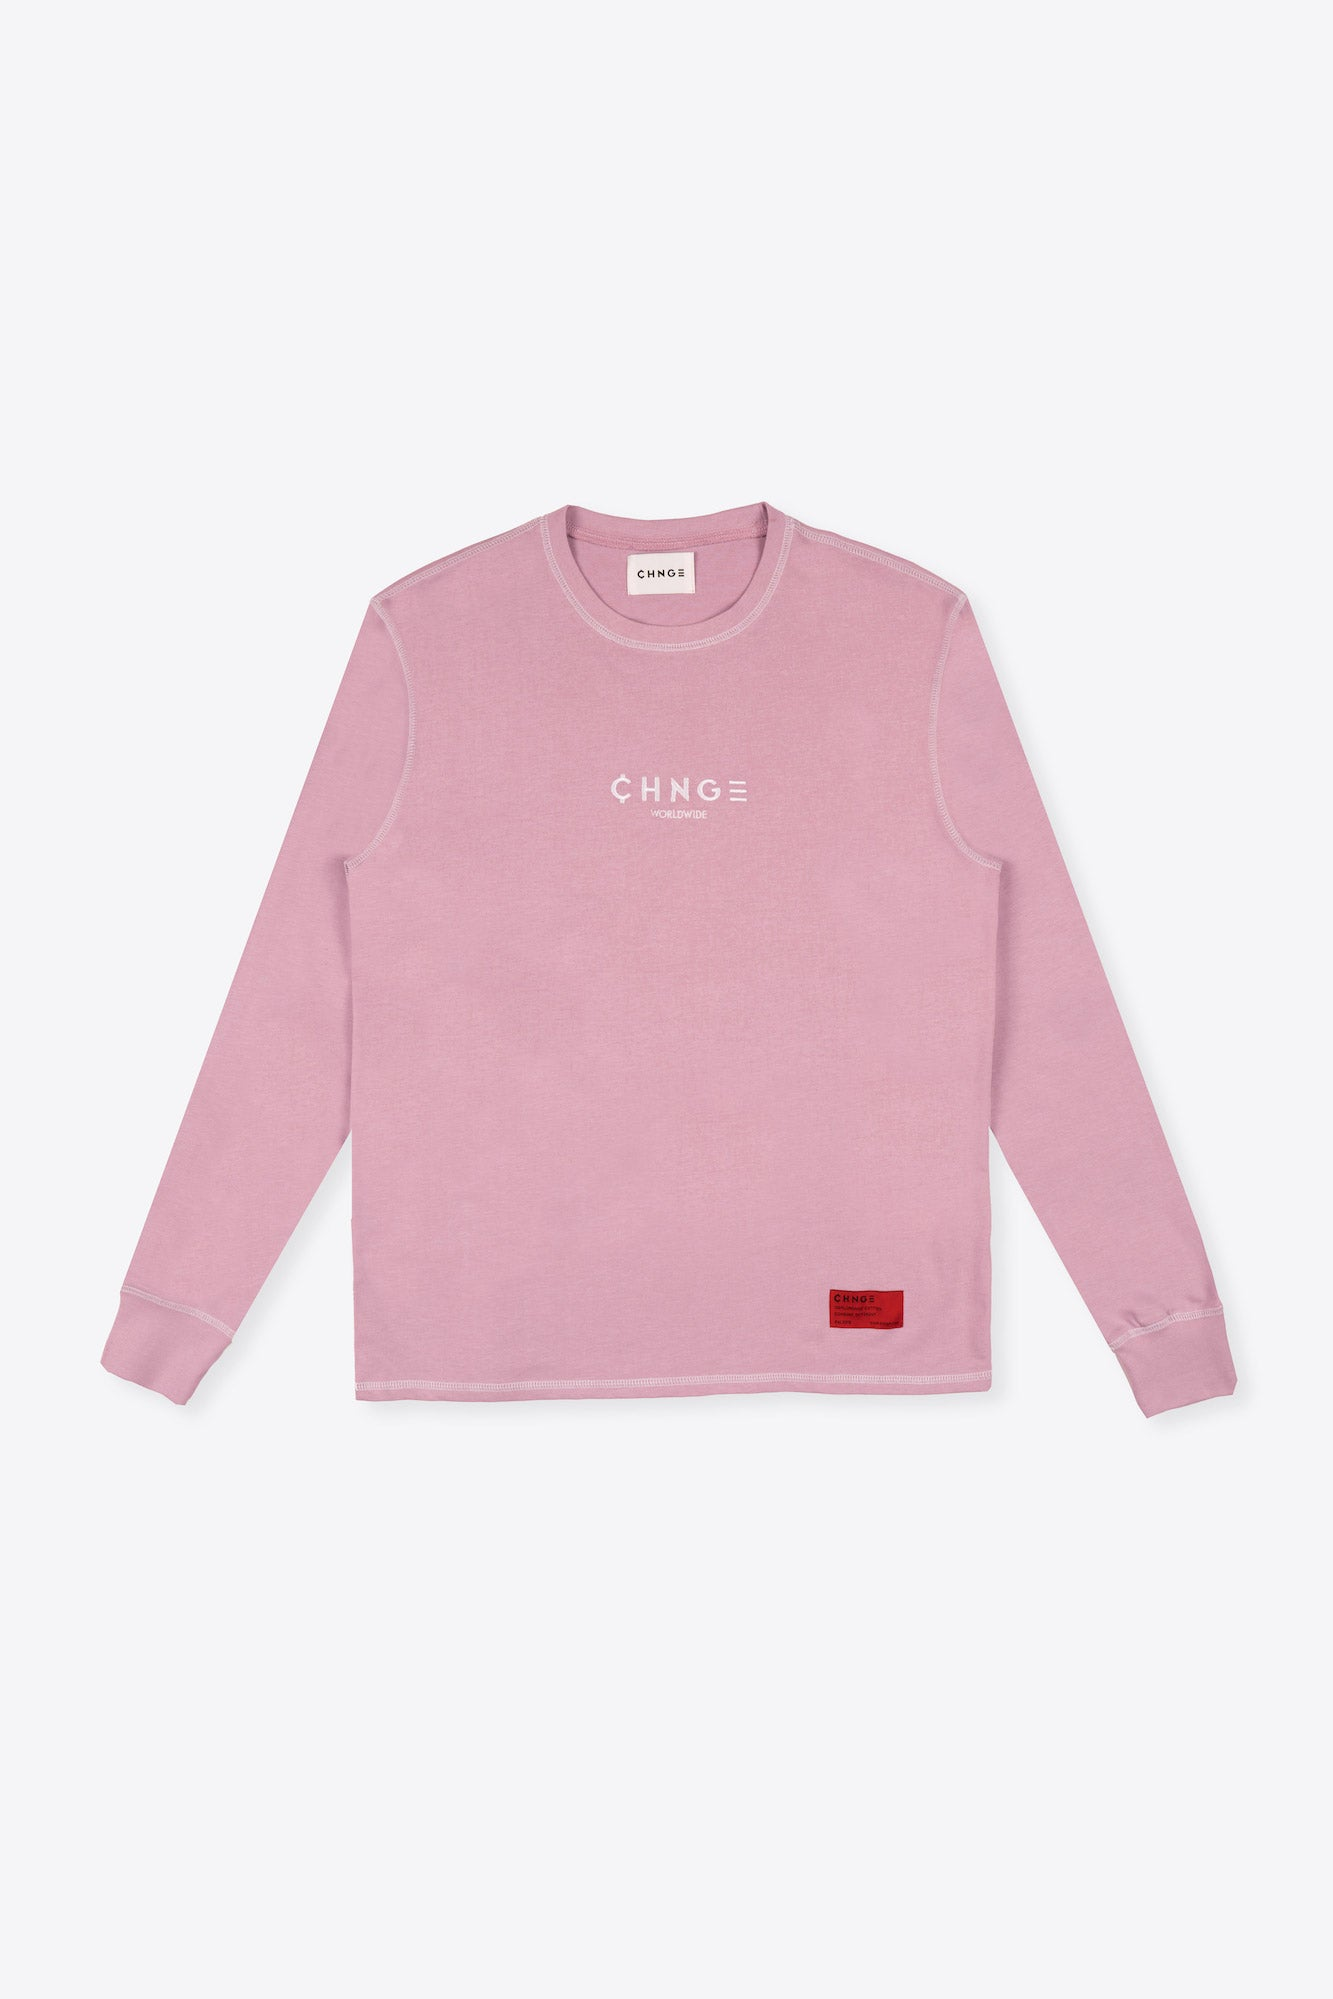 CHNGE Worldwide Contrast Stitch Tee (Mauve)